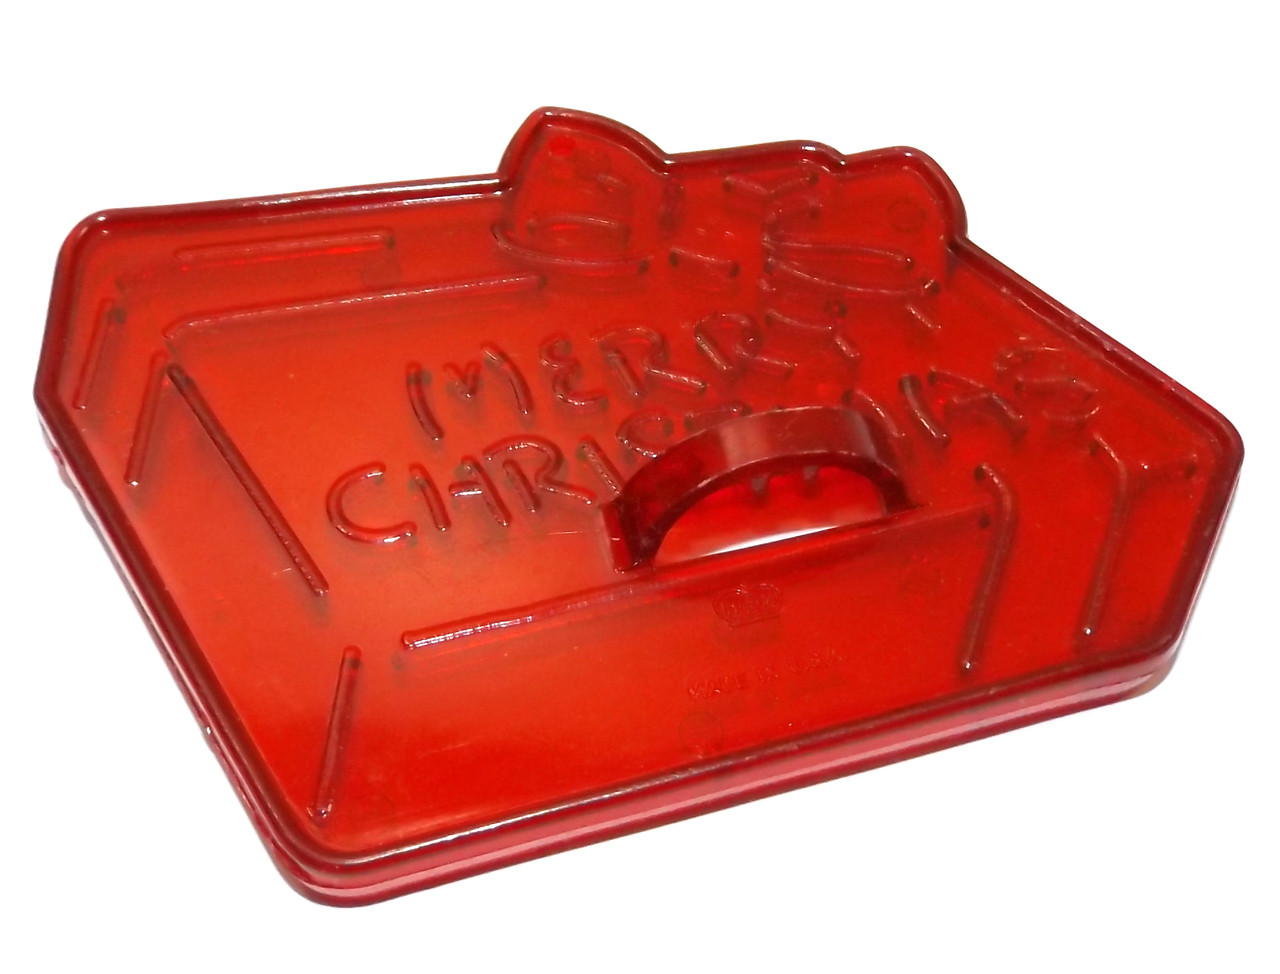 Vintage Hrm Red Plastic Merry Christmas Present Gift Shaped Cookie Cutter